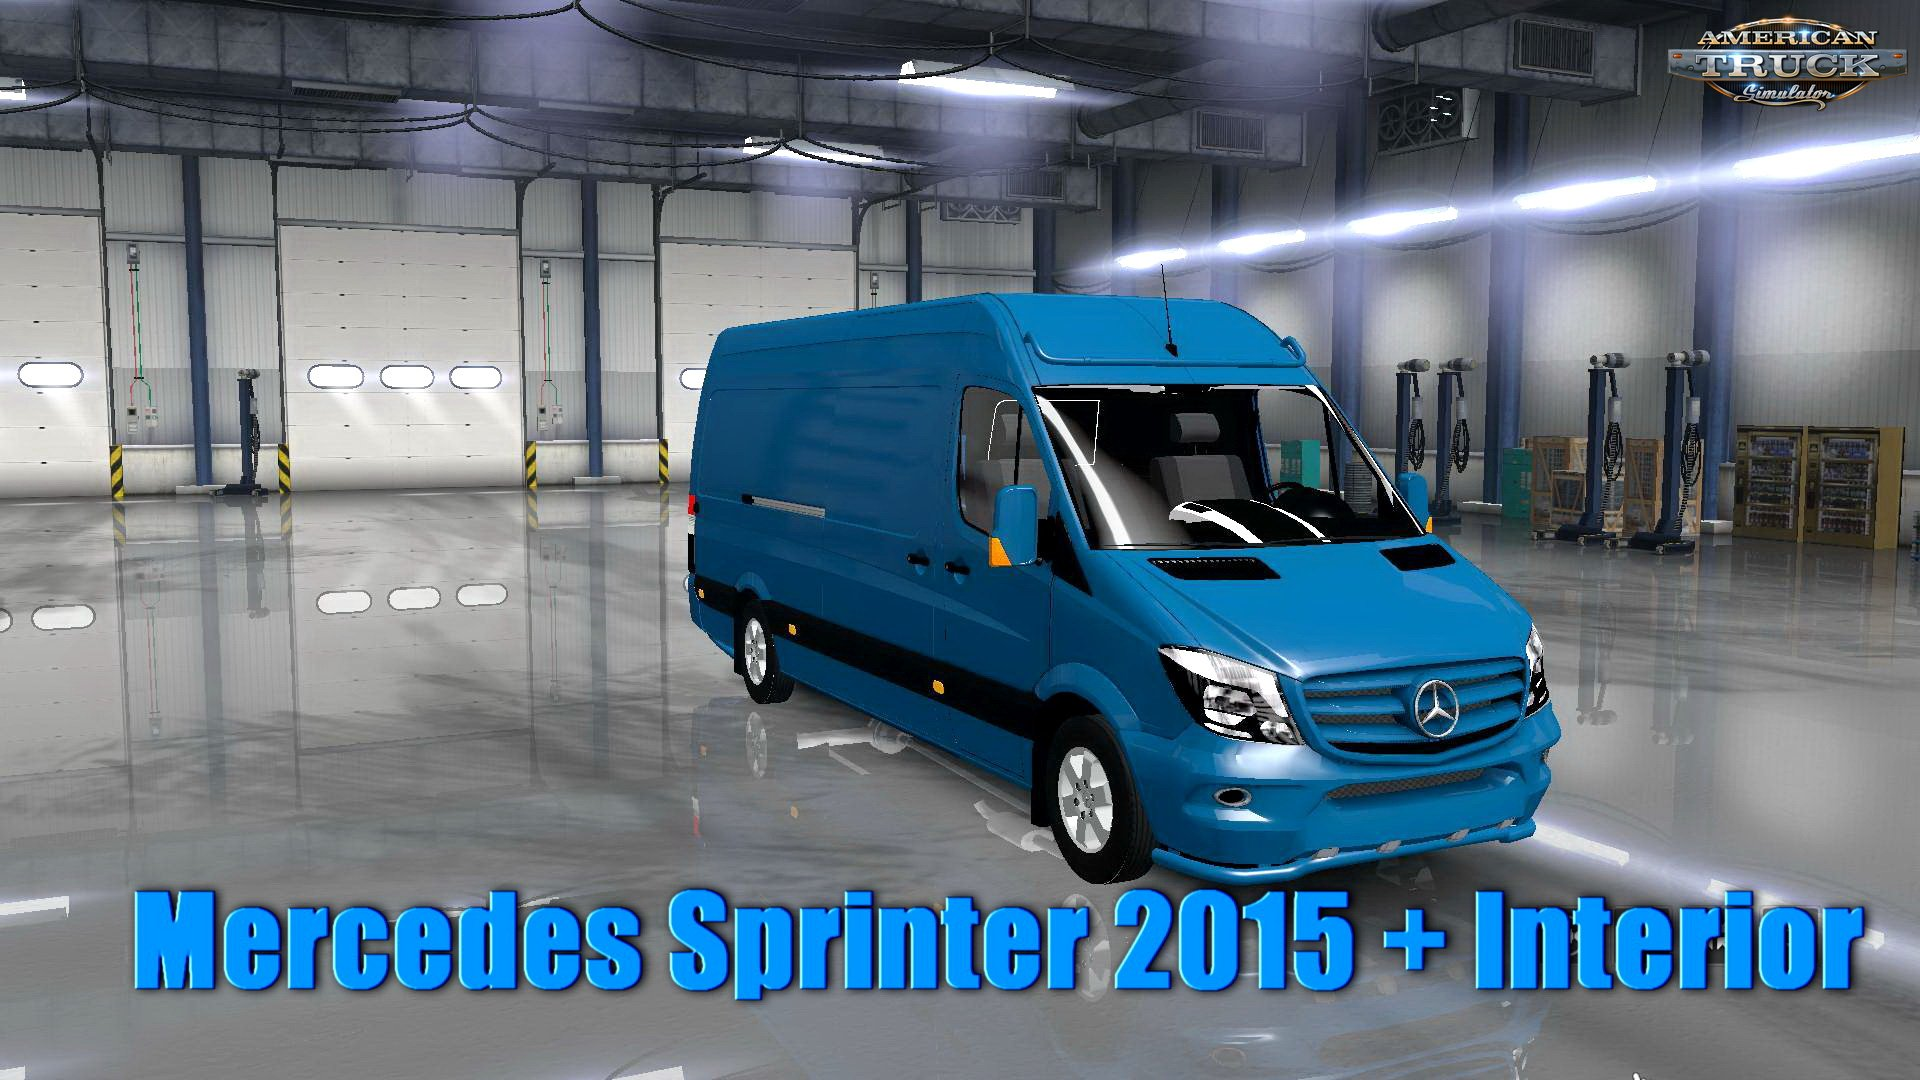 Mercedes Sprinter 2015 + Interior v1.0 (1.32.x)